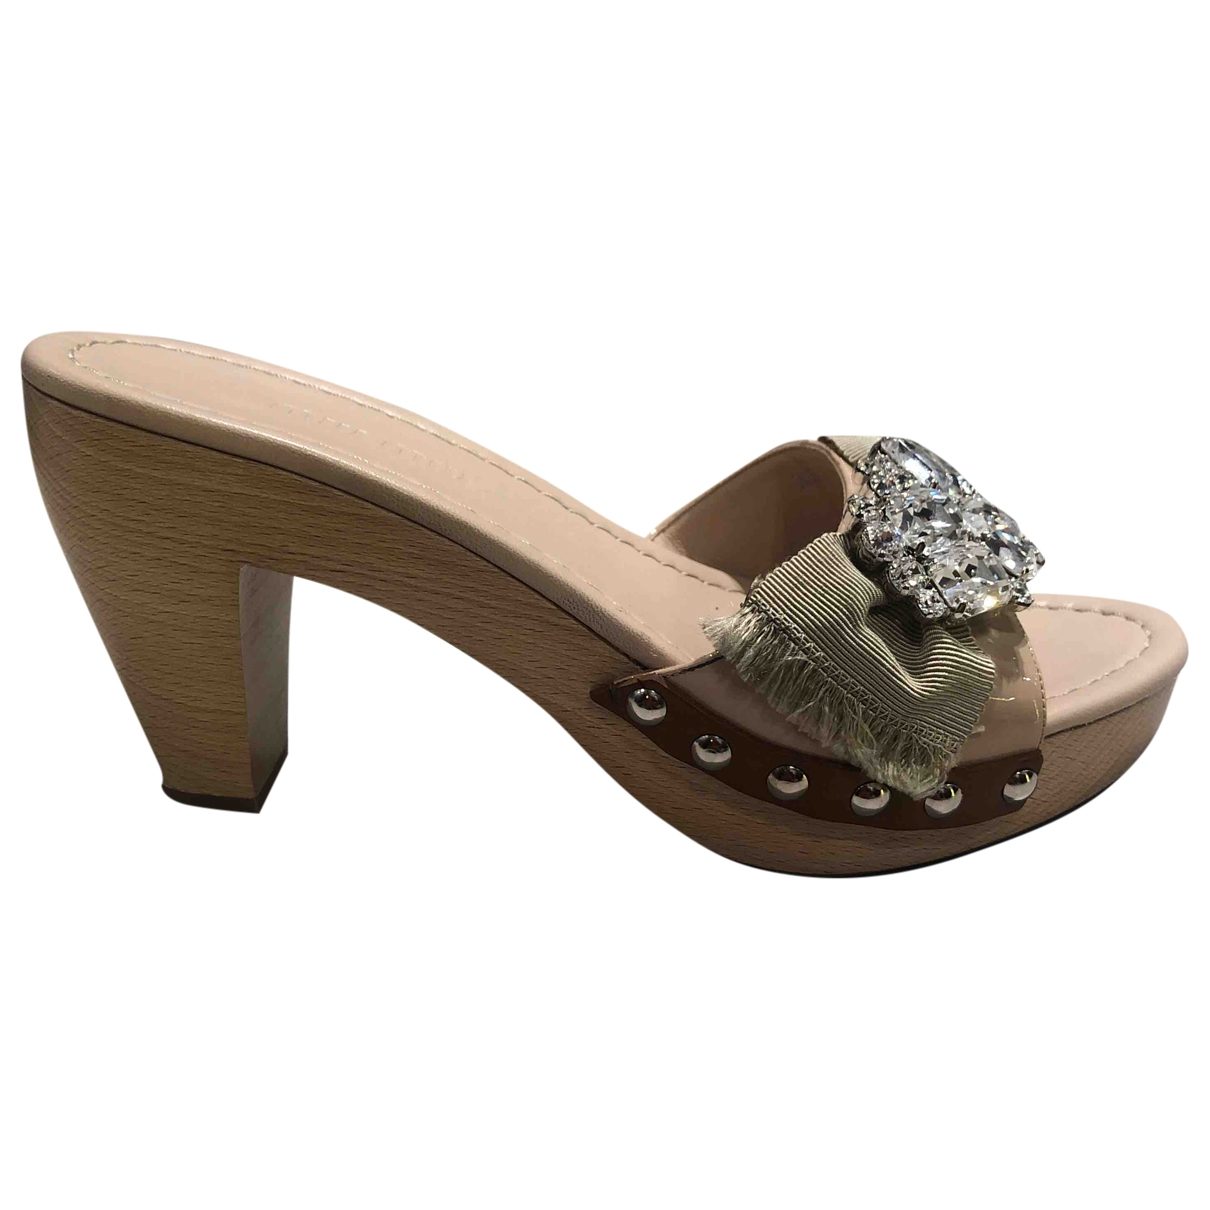 Miu Miu \N Clogs in  Beige Lackleder